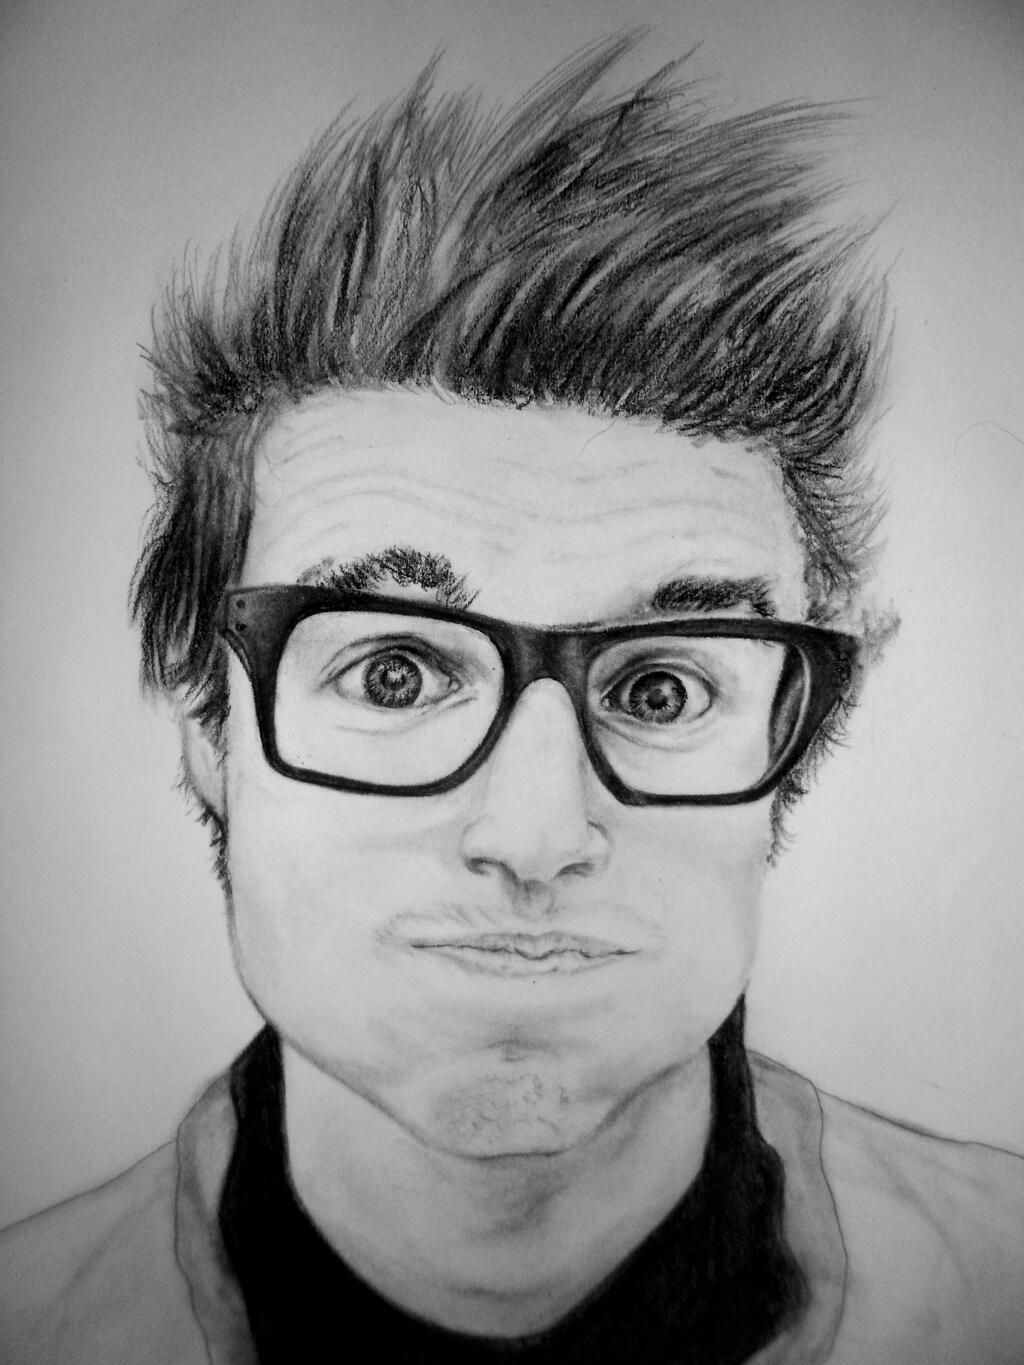 Found an old drawing I did looking on pinterest. Too cool! #pinterest #marcusbutler #drawing